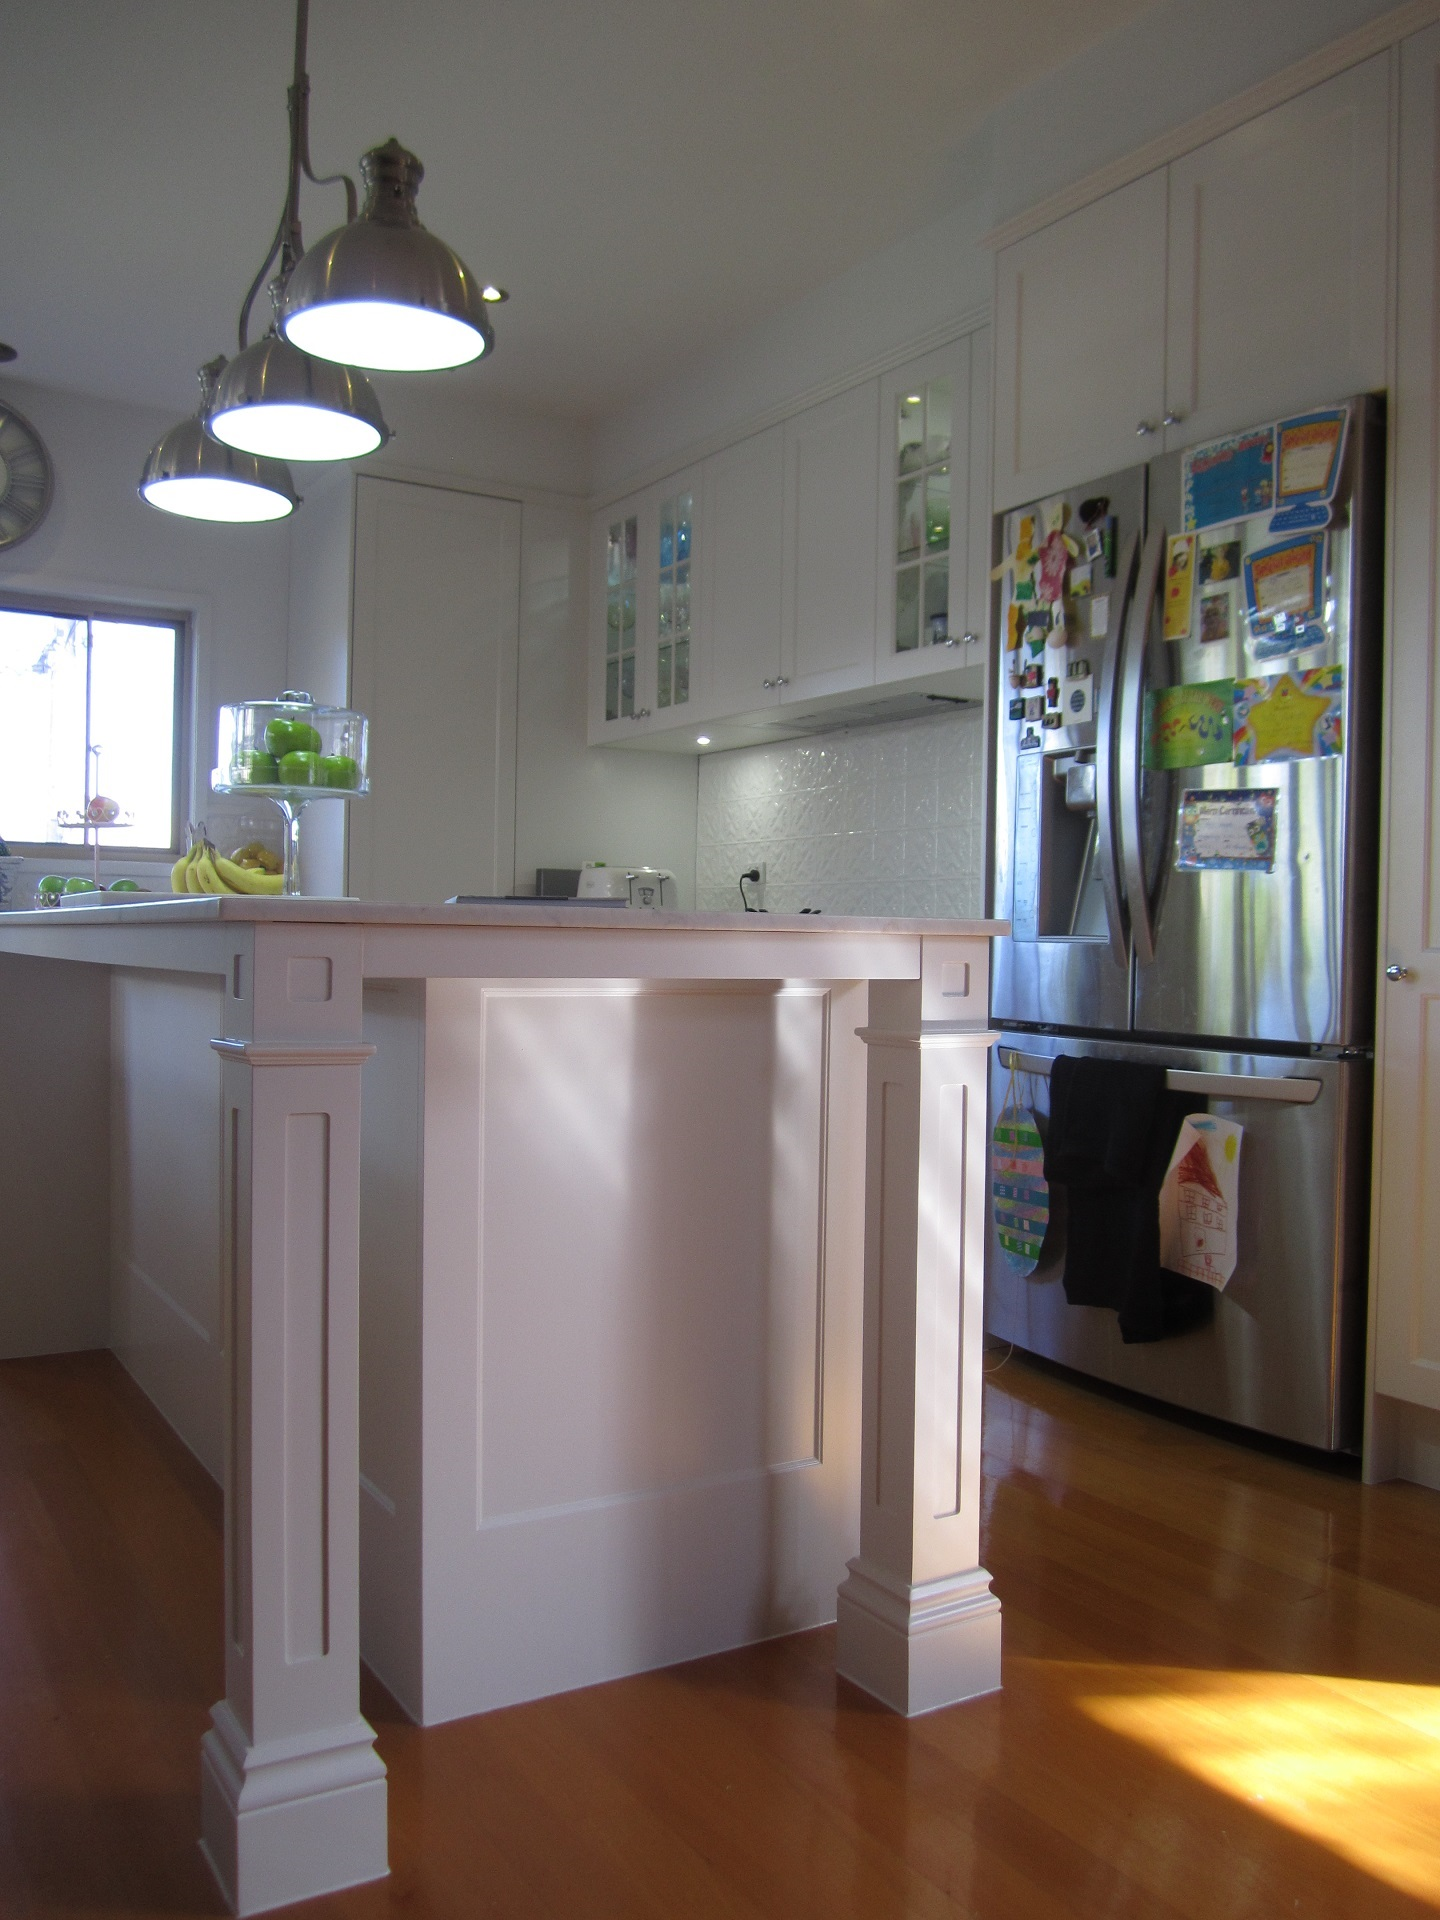 Brisbane Kitchen Design Garate Graceville Traditional KitchenRenovation (1)